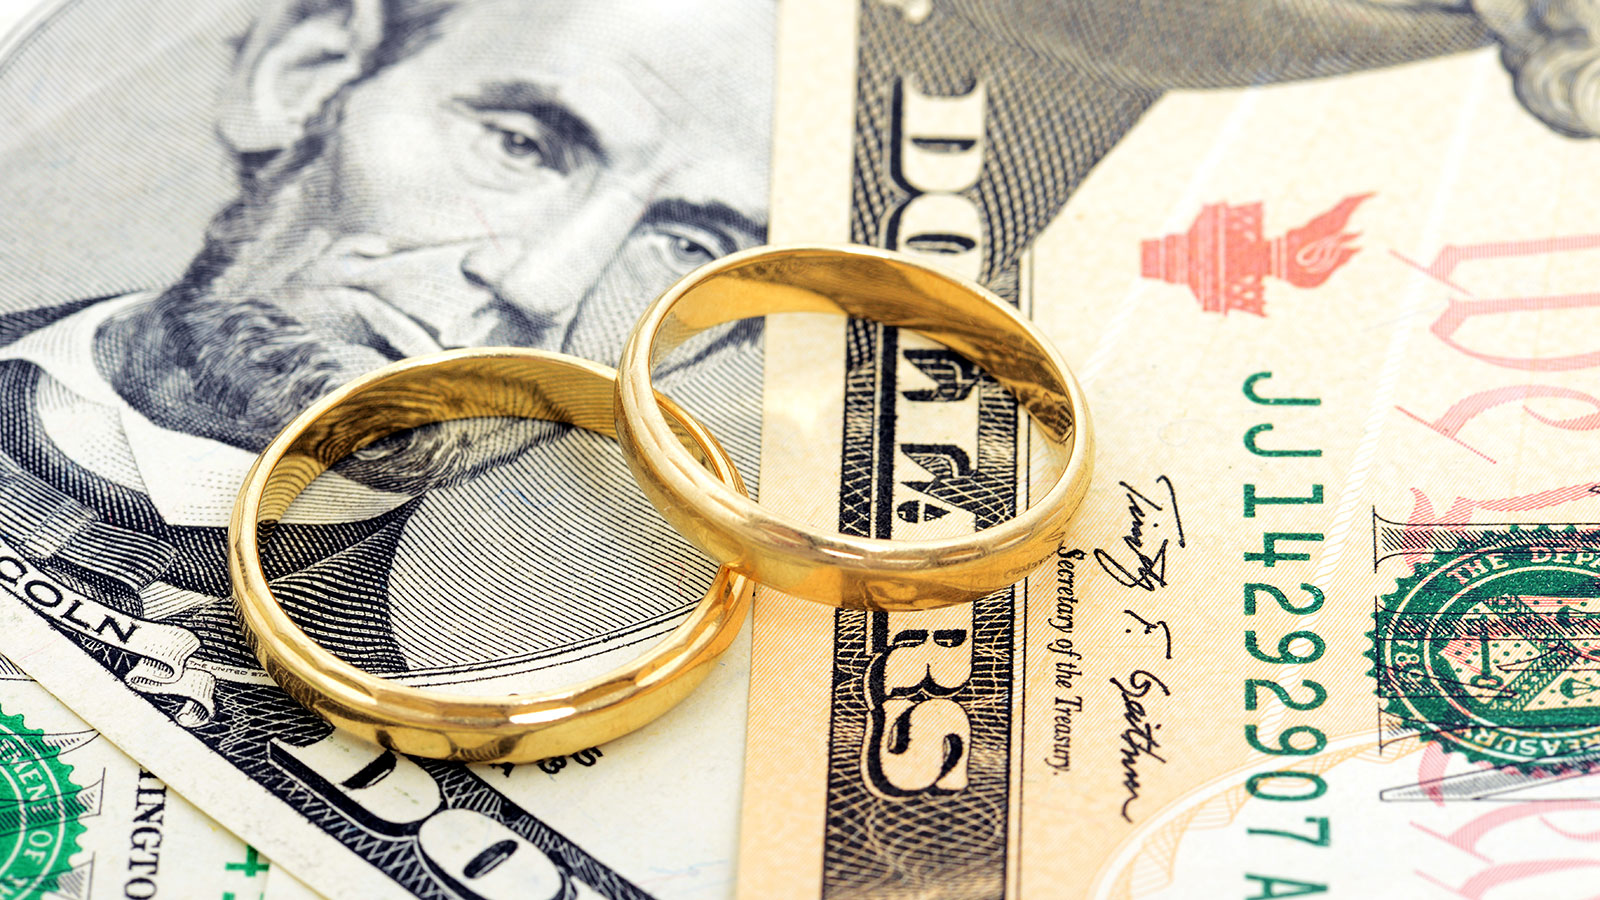 Survey says spending under $1,000 on your wedding may increase your chance of divorce